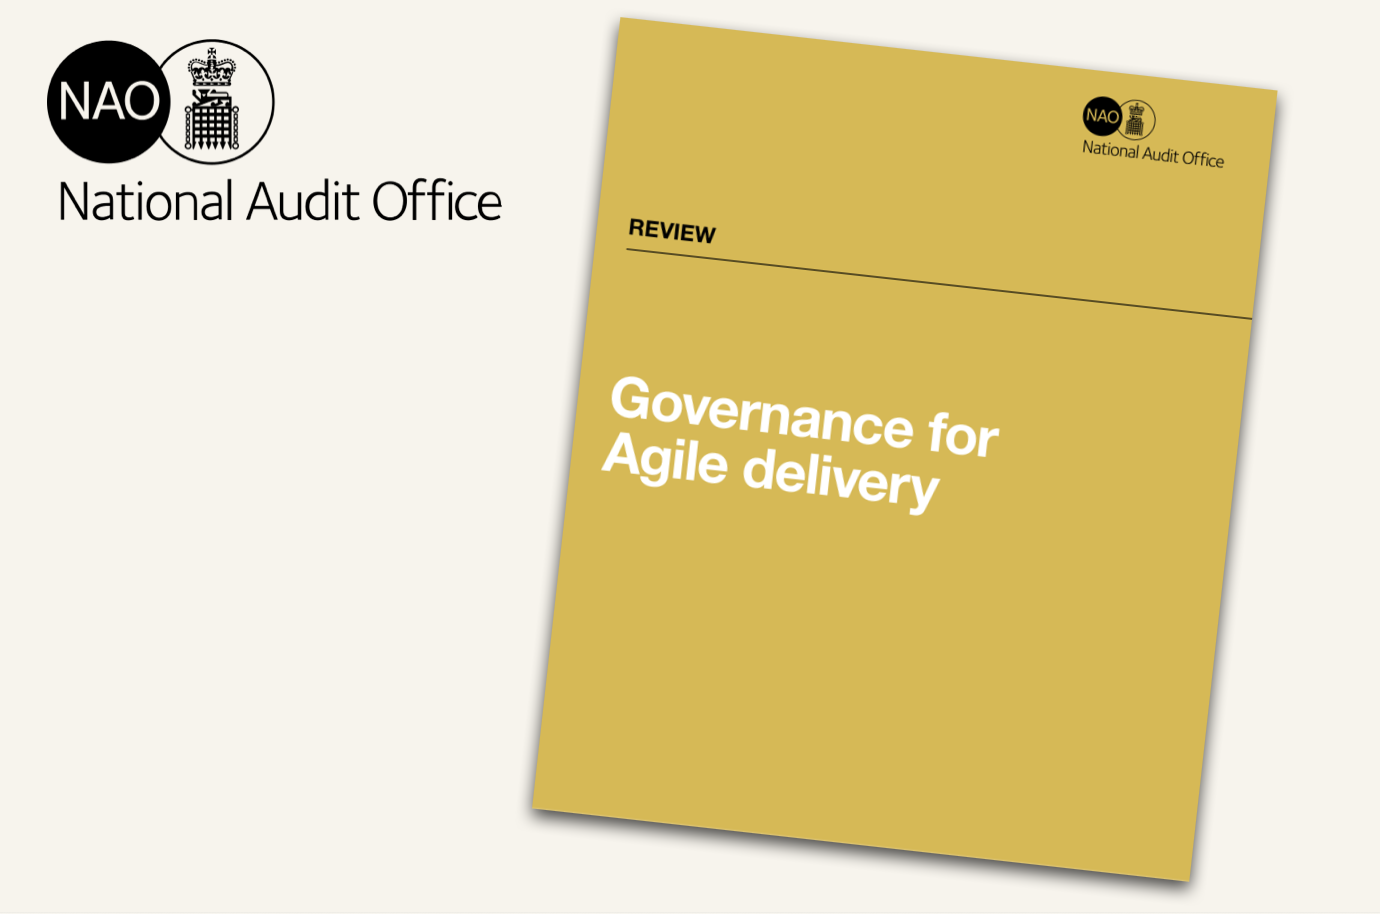 An image of the cover of the National Audit Office report 'Governance for Agile delivery'